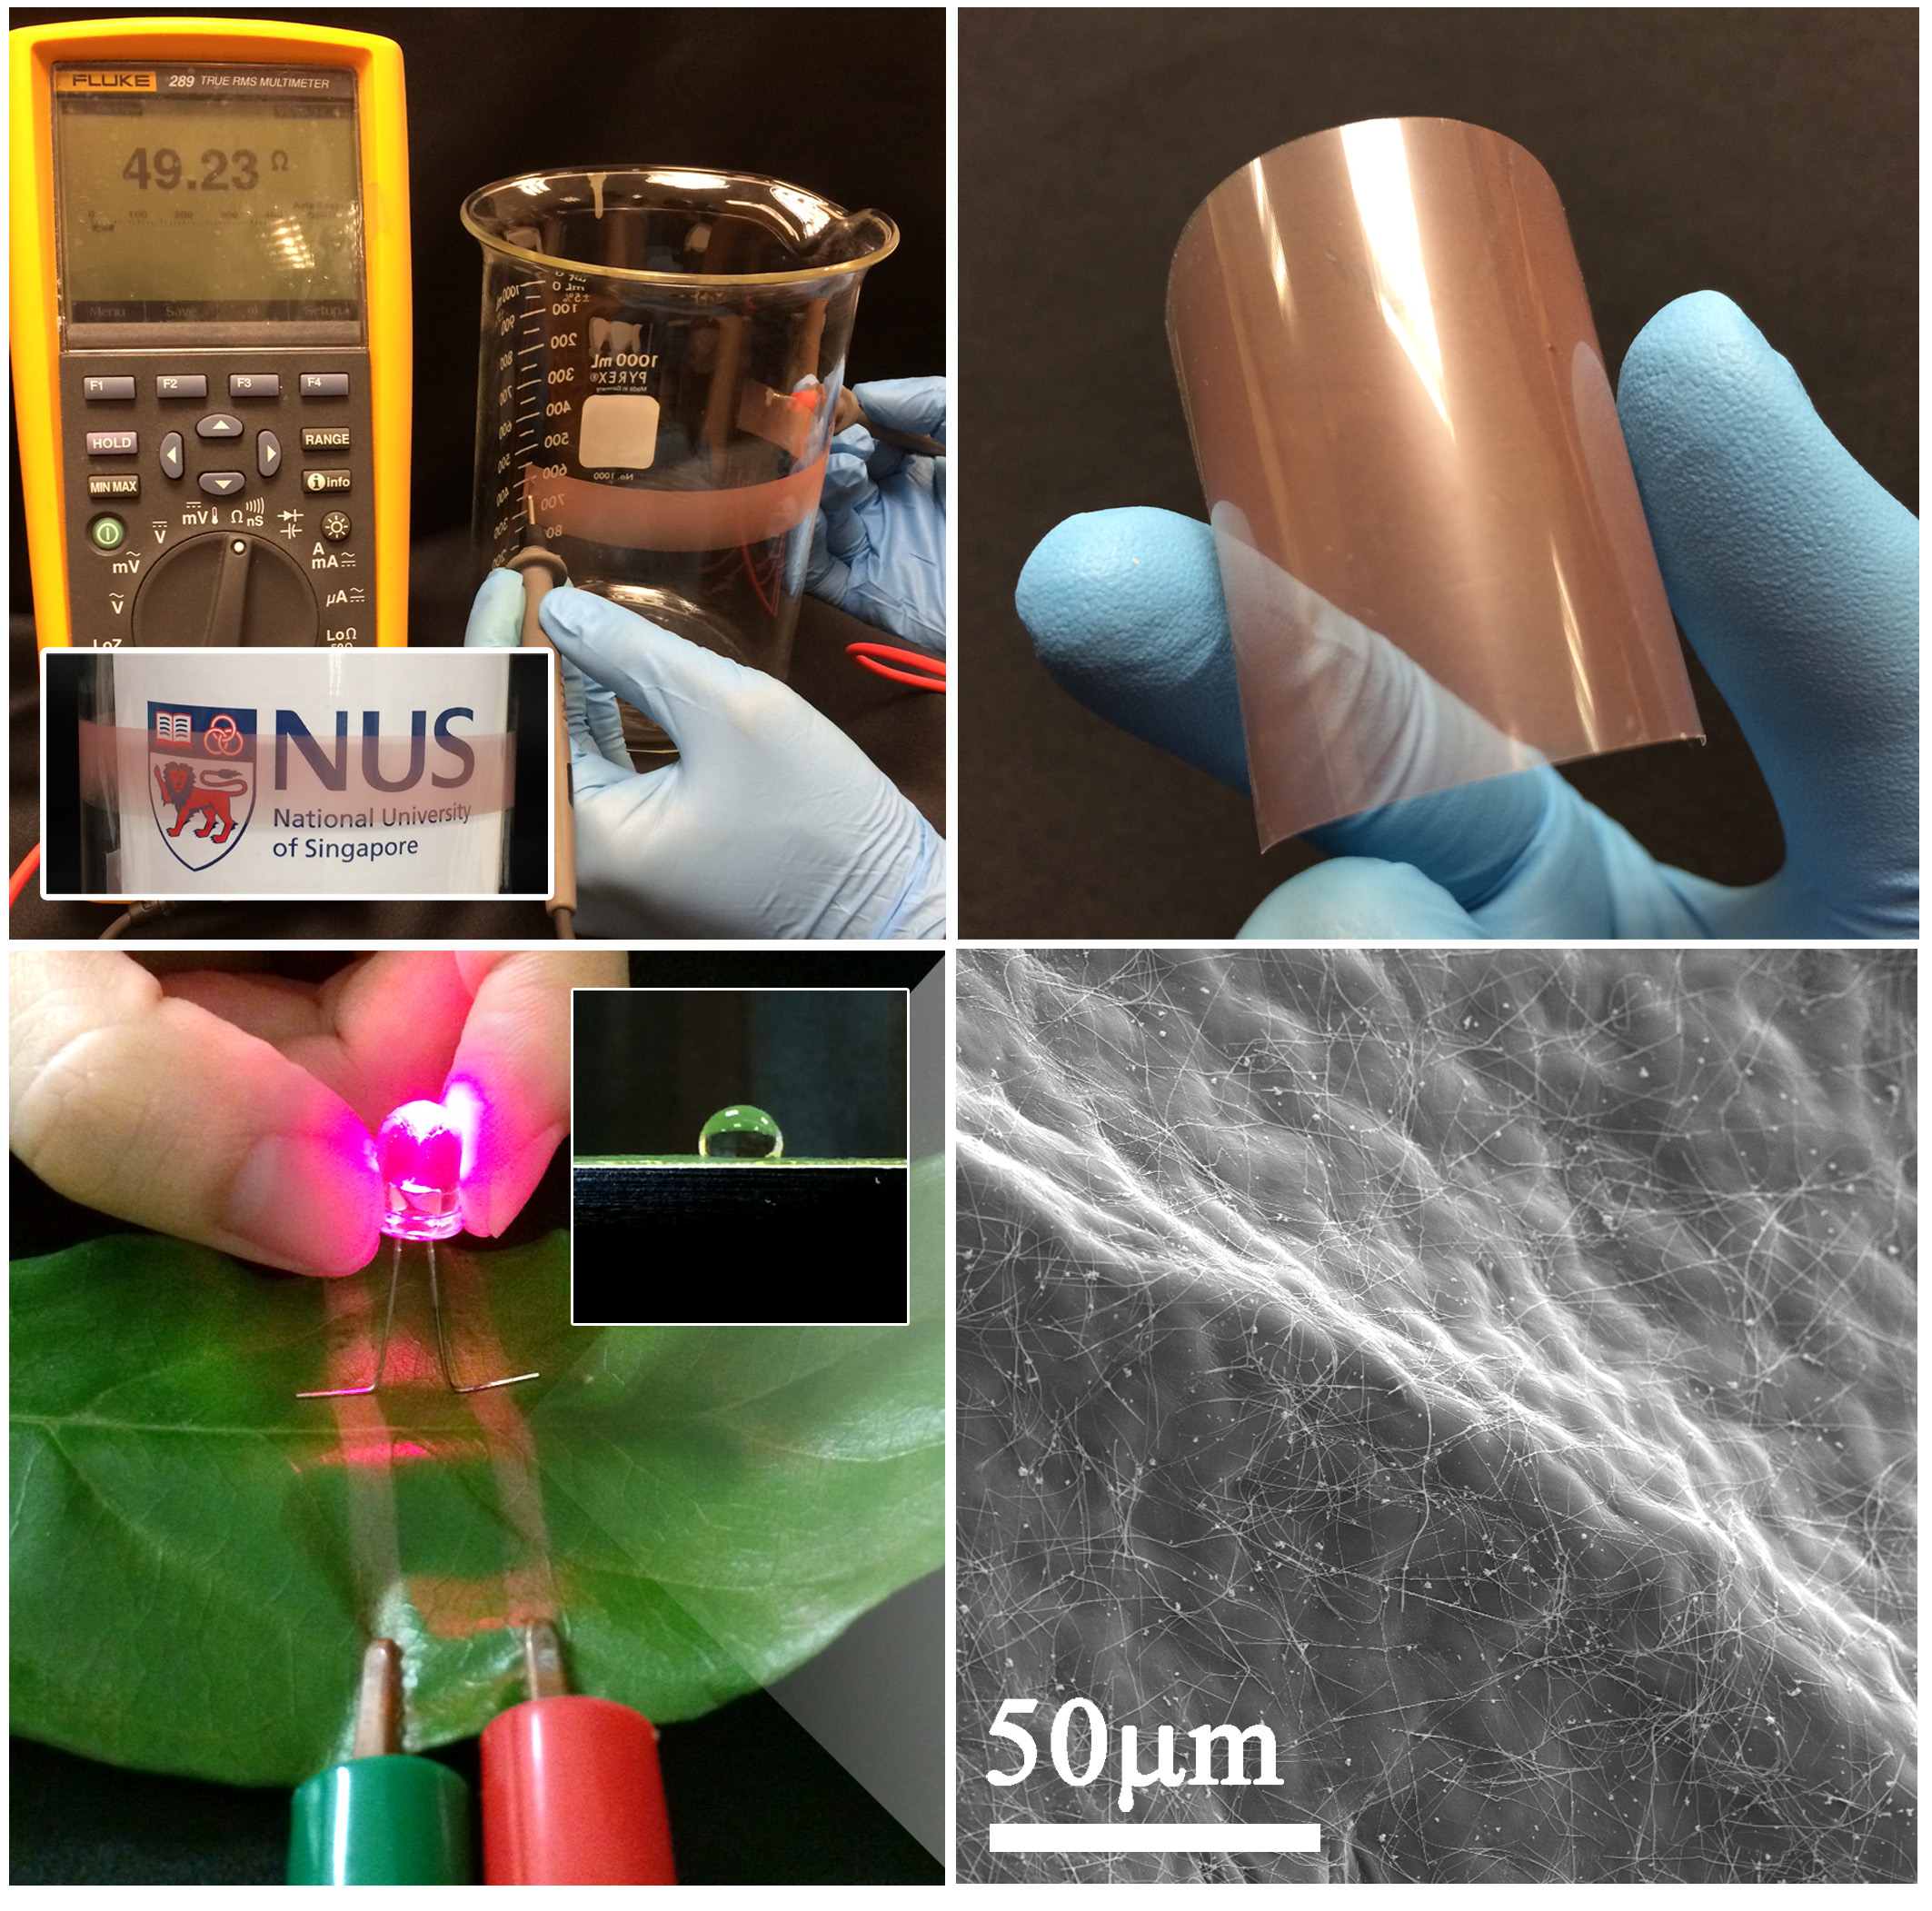 Facile control of copper nanowire via the Maillard reaction using food chemistry for large scale transparent flexible conductors